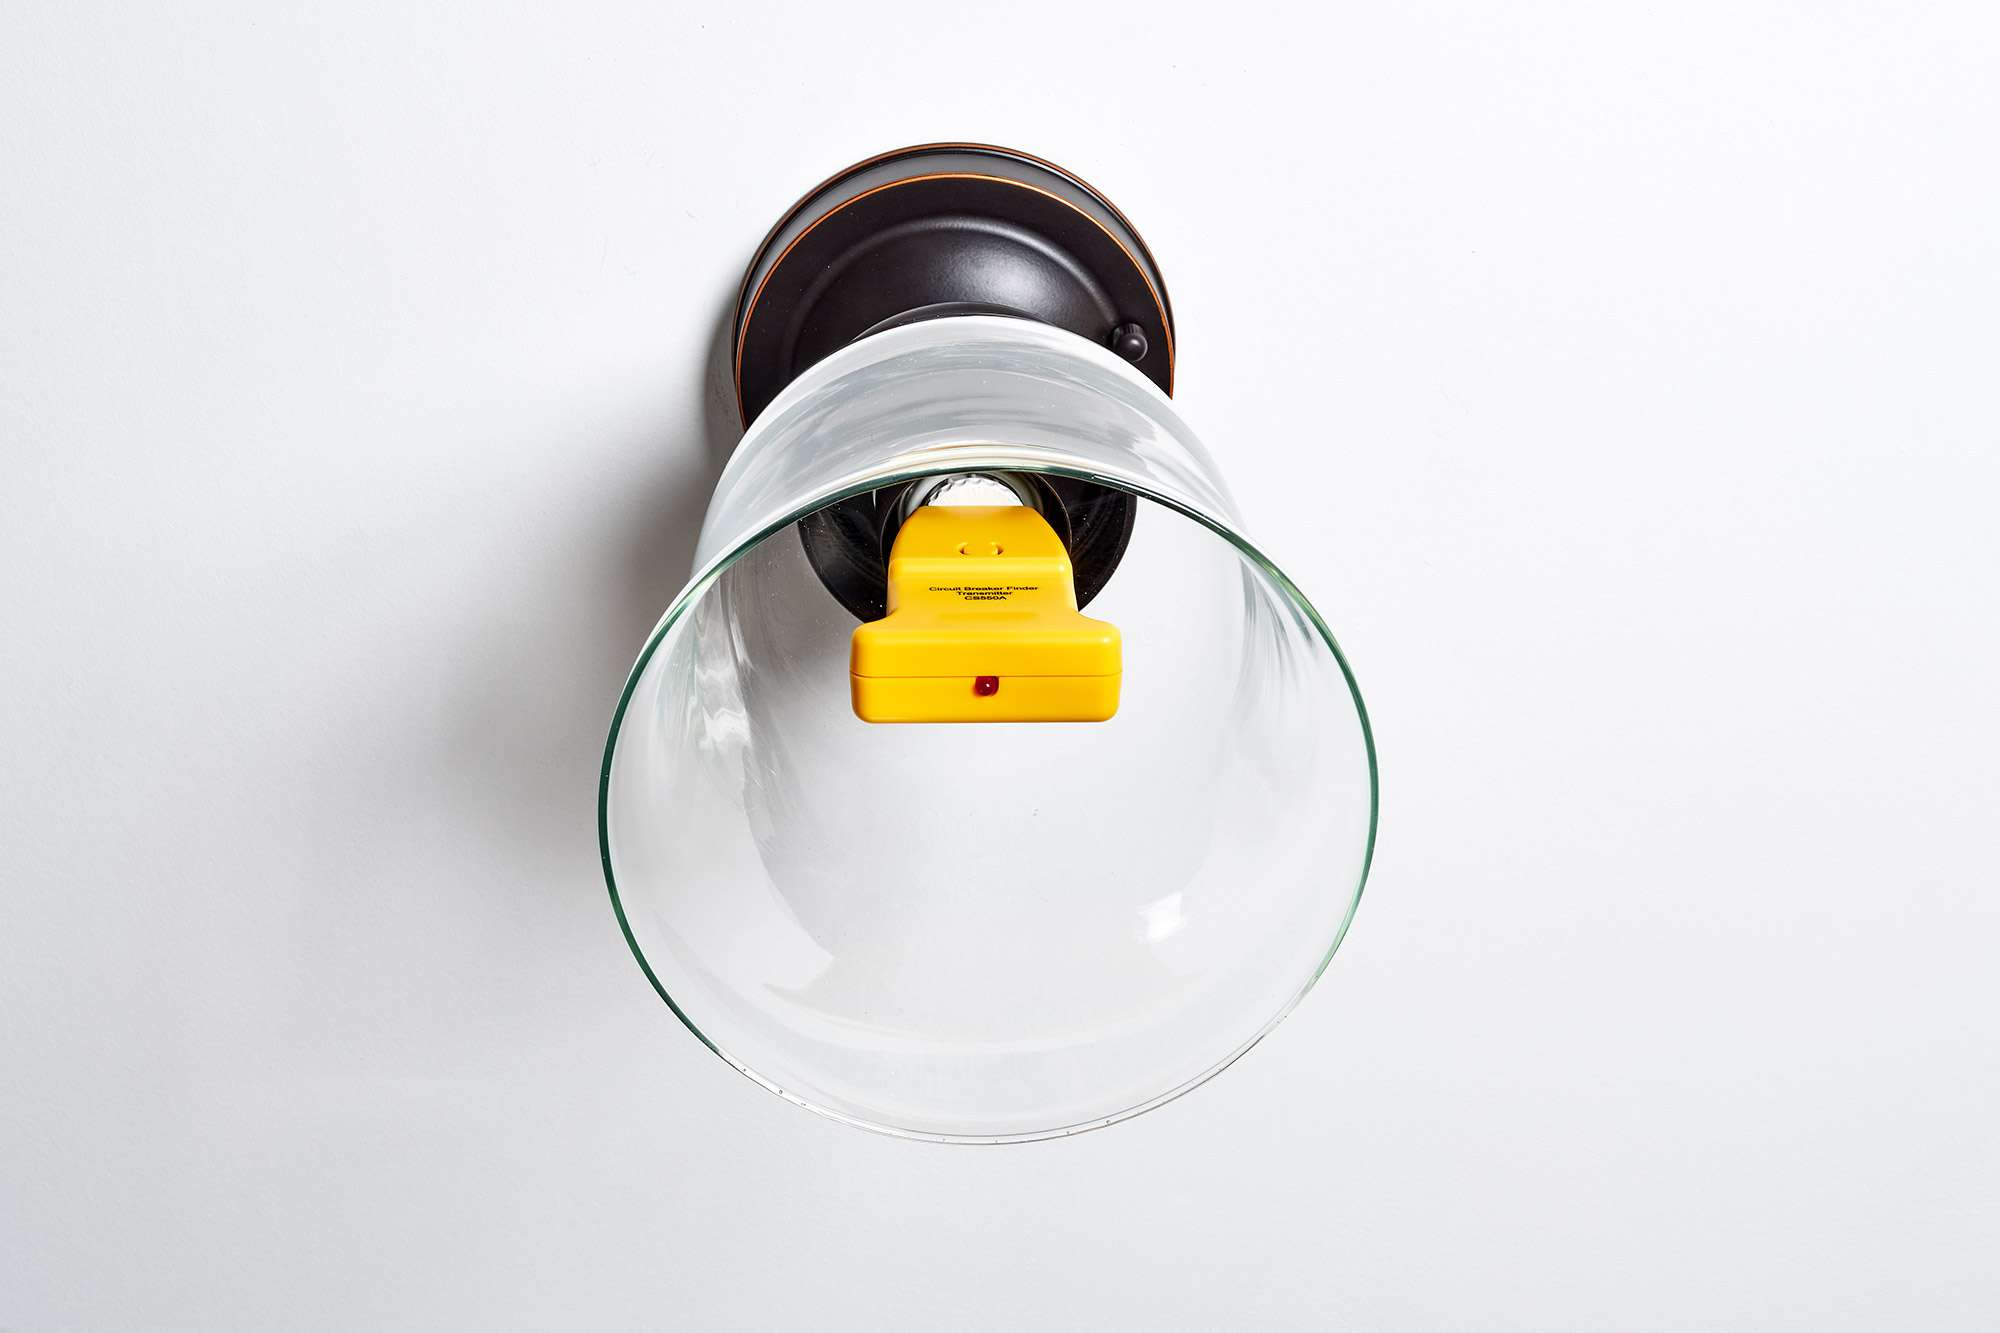 Circuit breaker finder inserted into light fixture with adapter